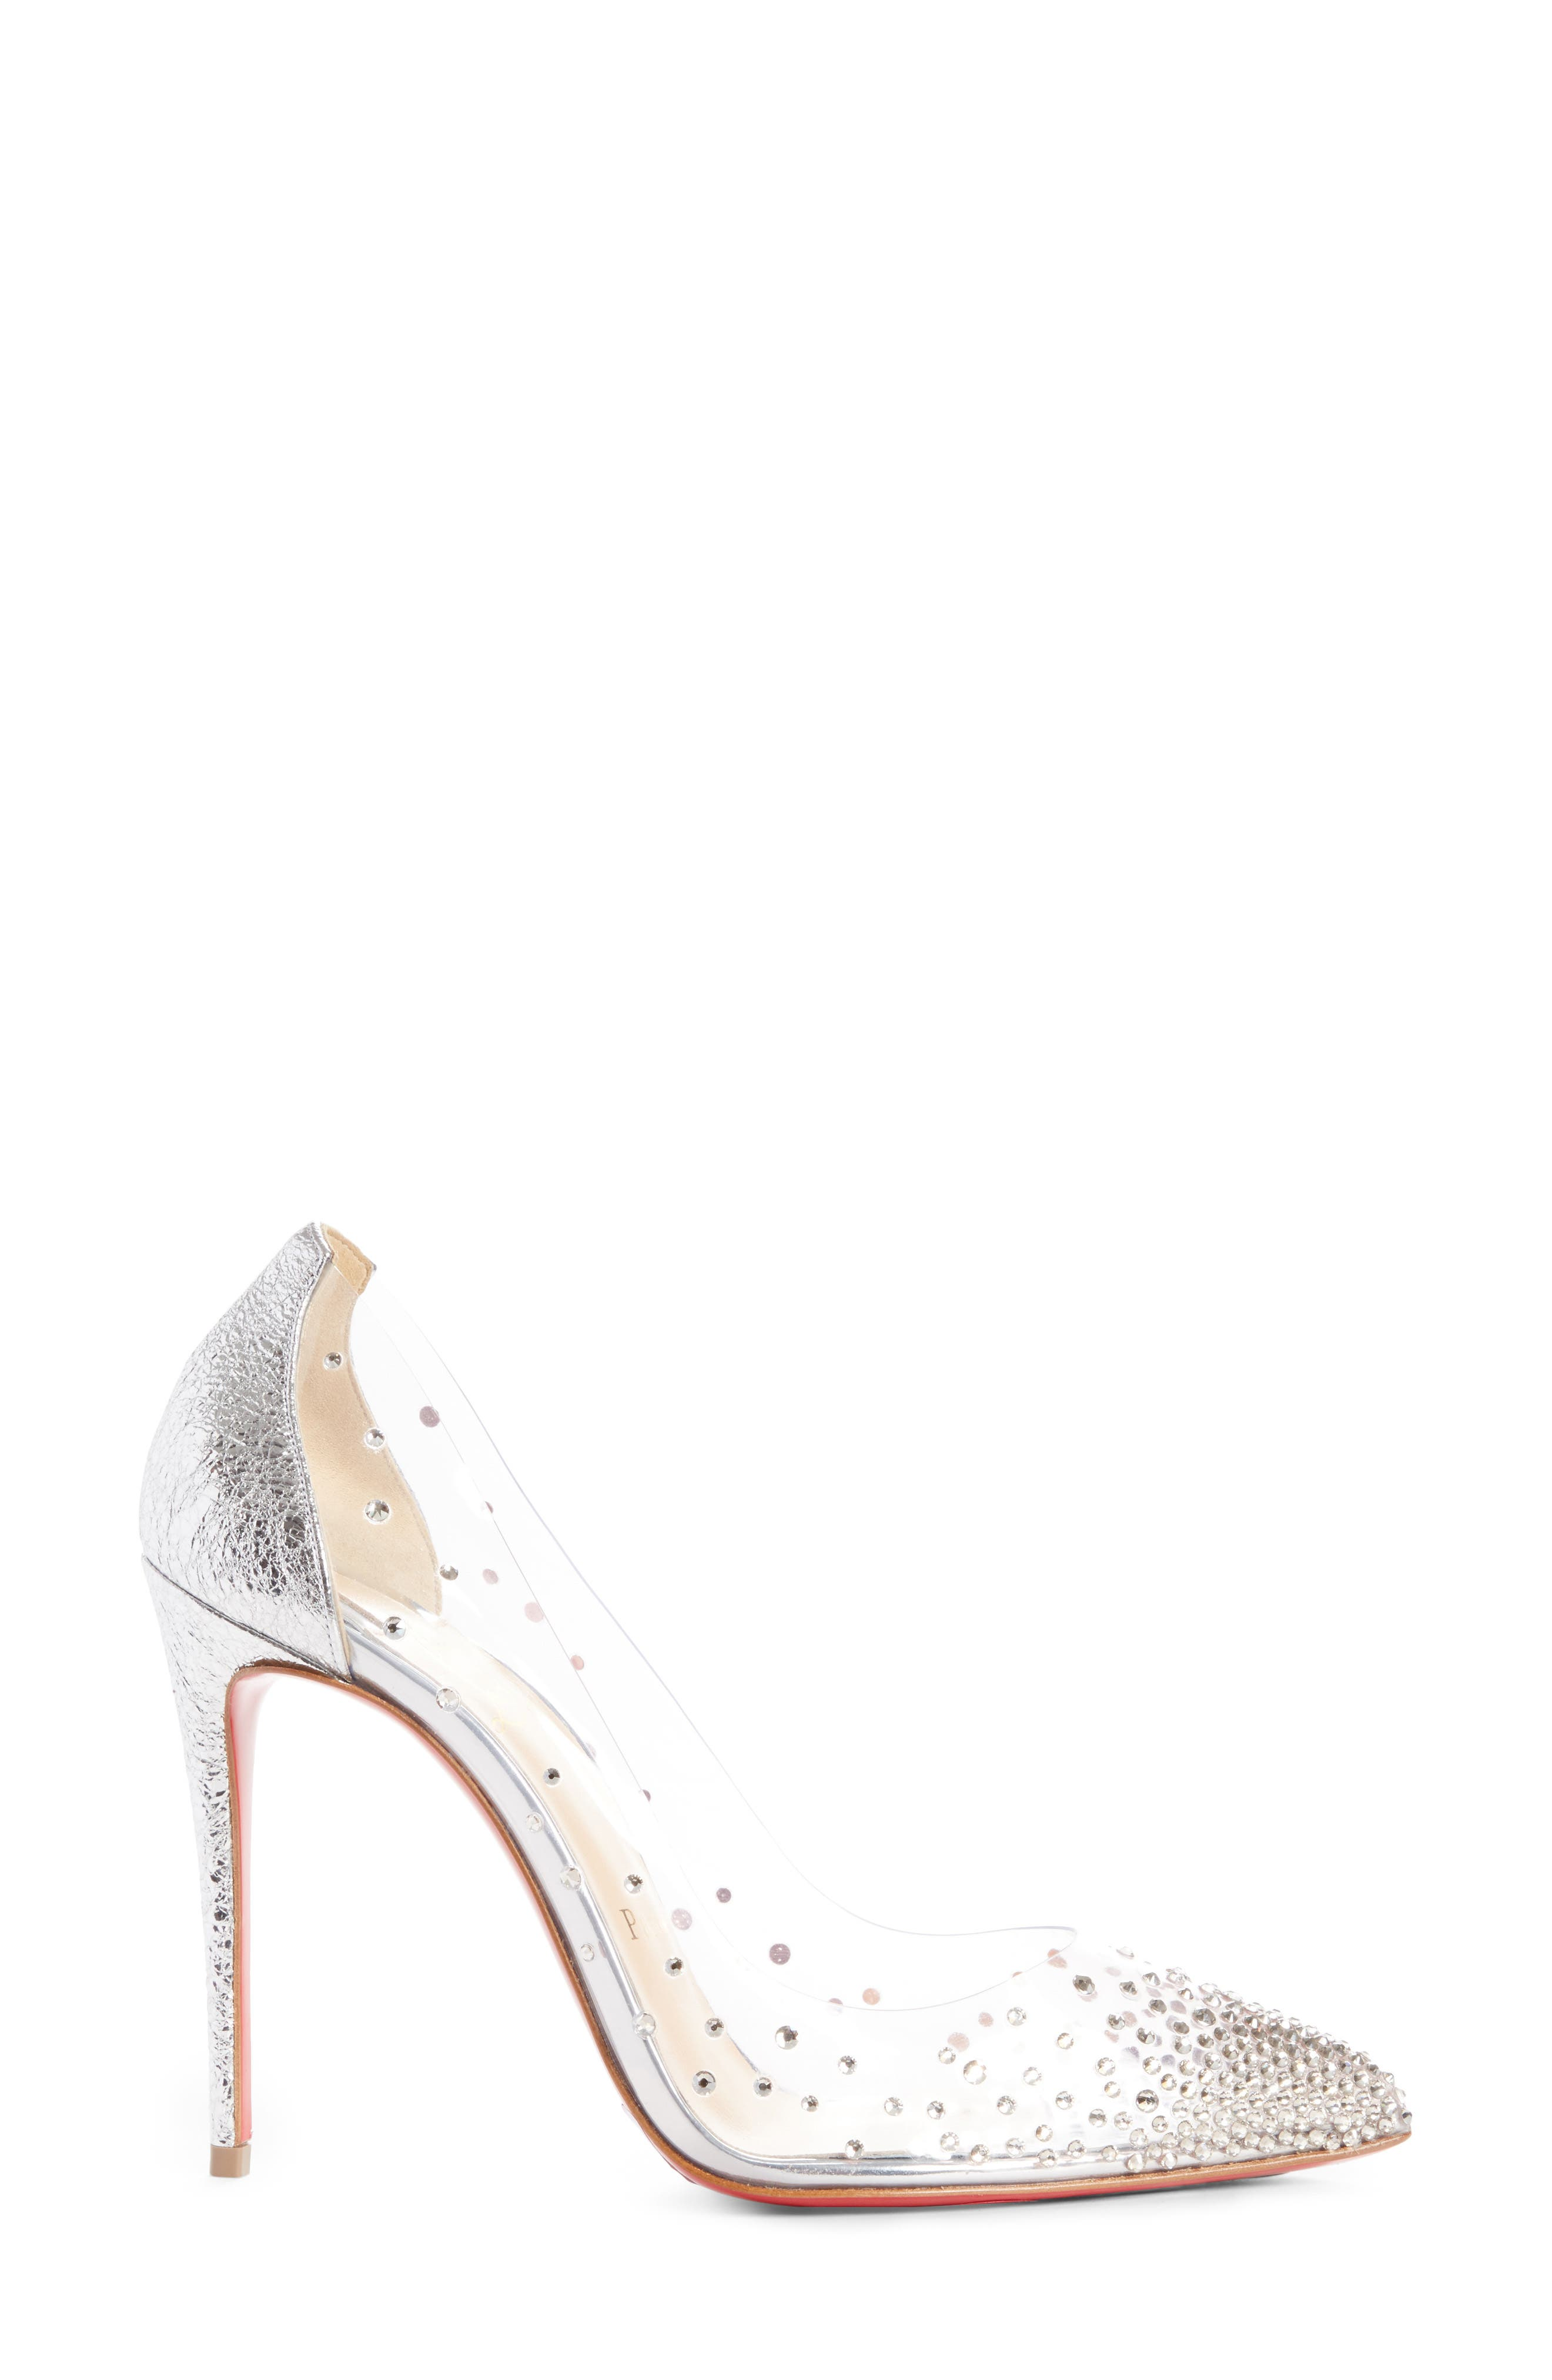 CHRISTIAN LOUBOUTIN,                             Degrastrass Clear Embellished Pump,                             Alternate thumbnail 3, color,                             042